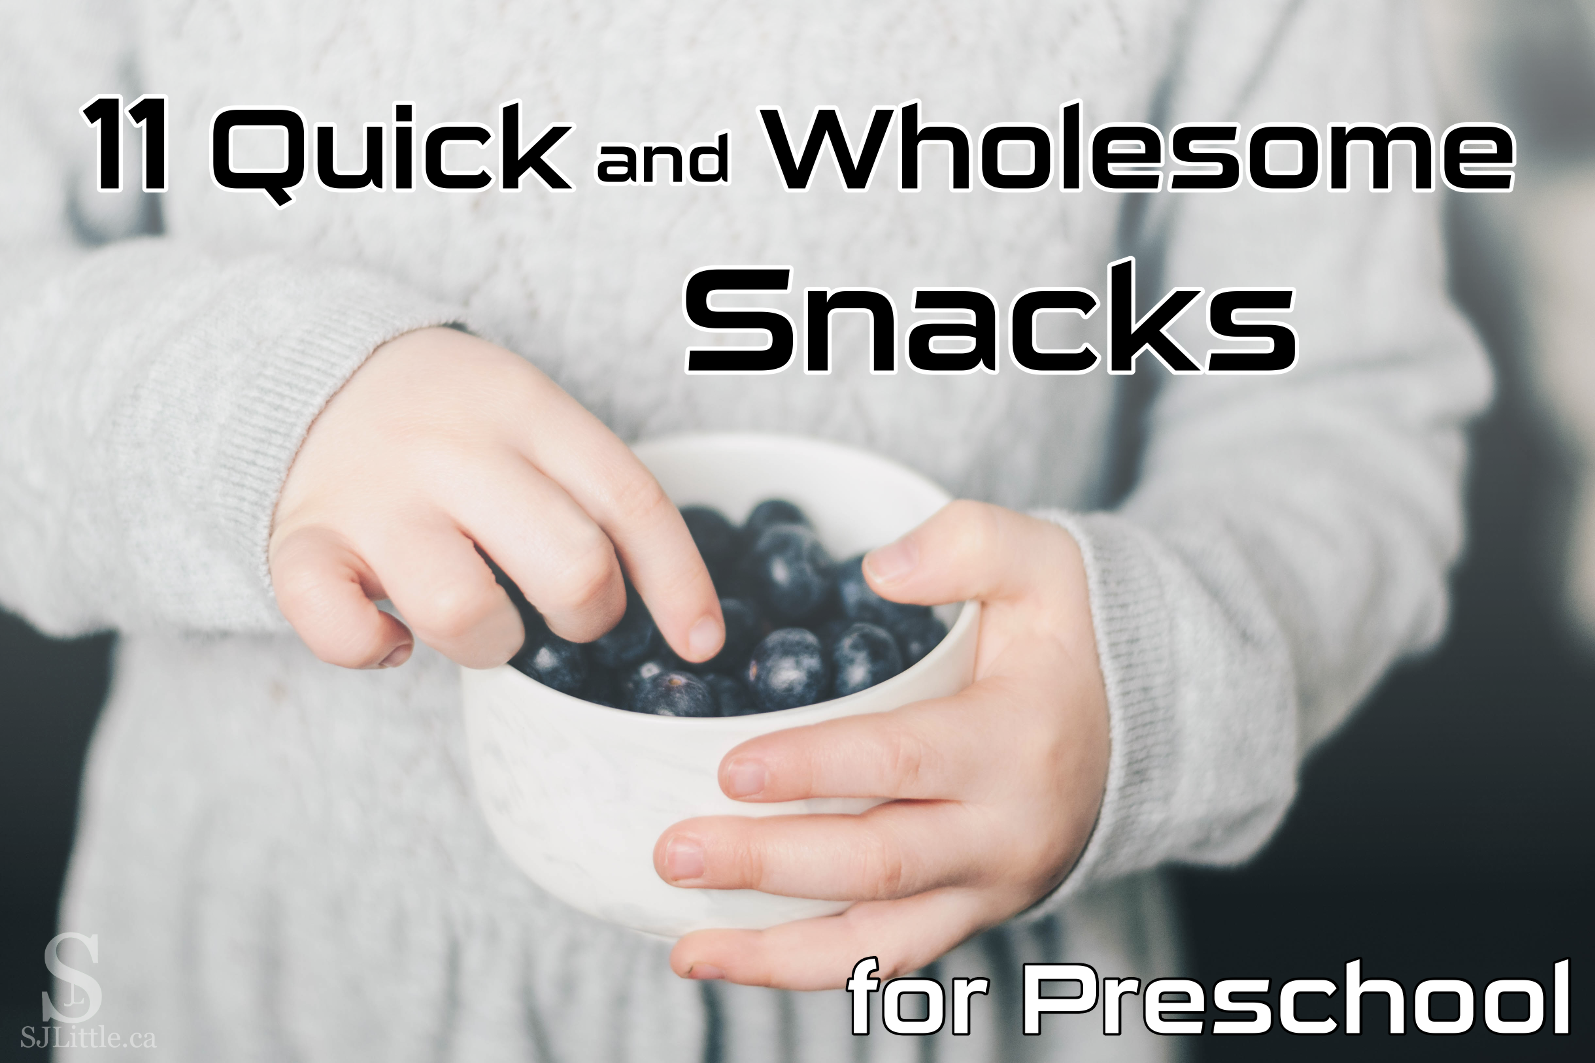 11 Quick and Wholesome Snacks for Preschool - Inexpensive and Healthy Ideas by teacher S. J. Little